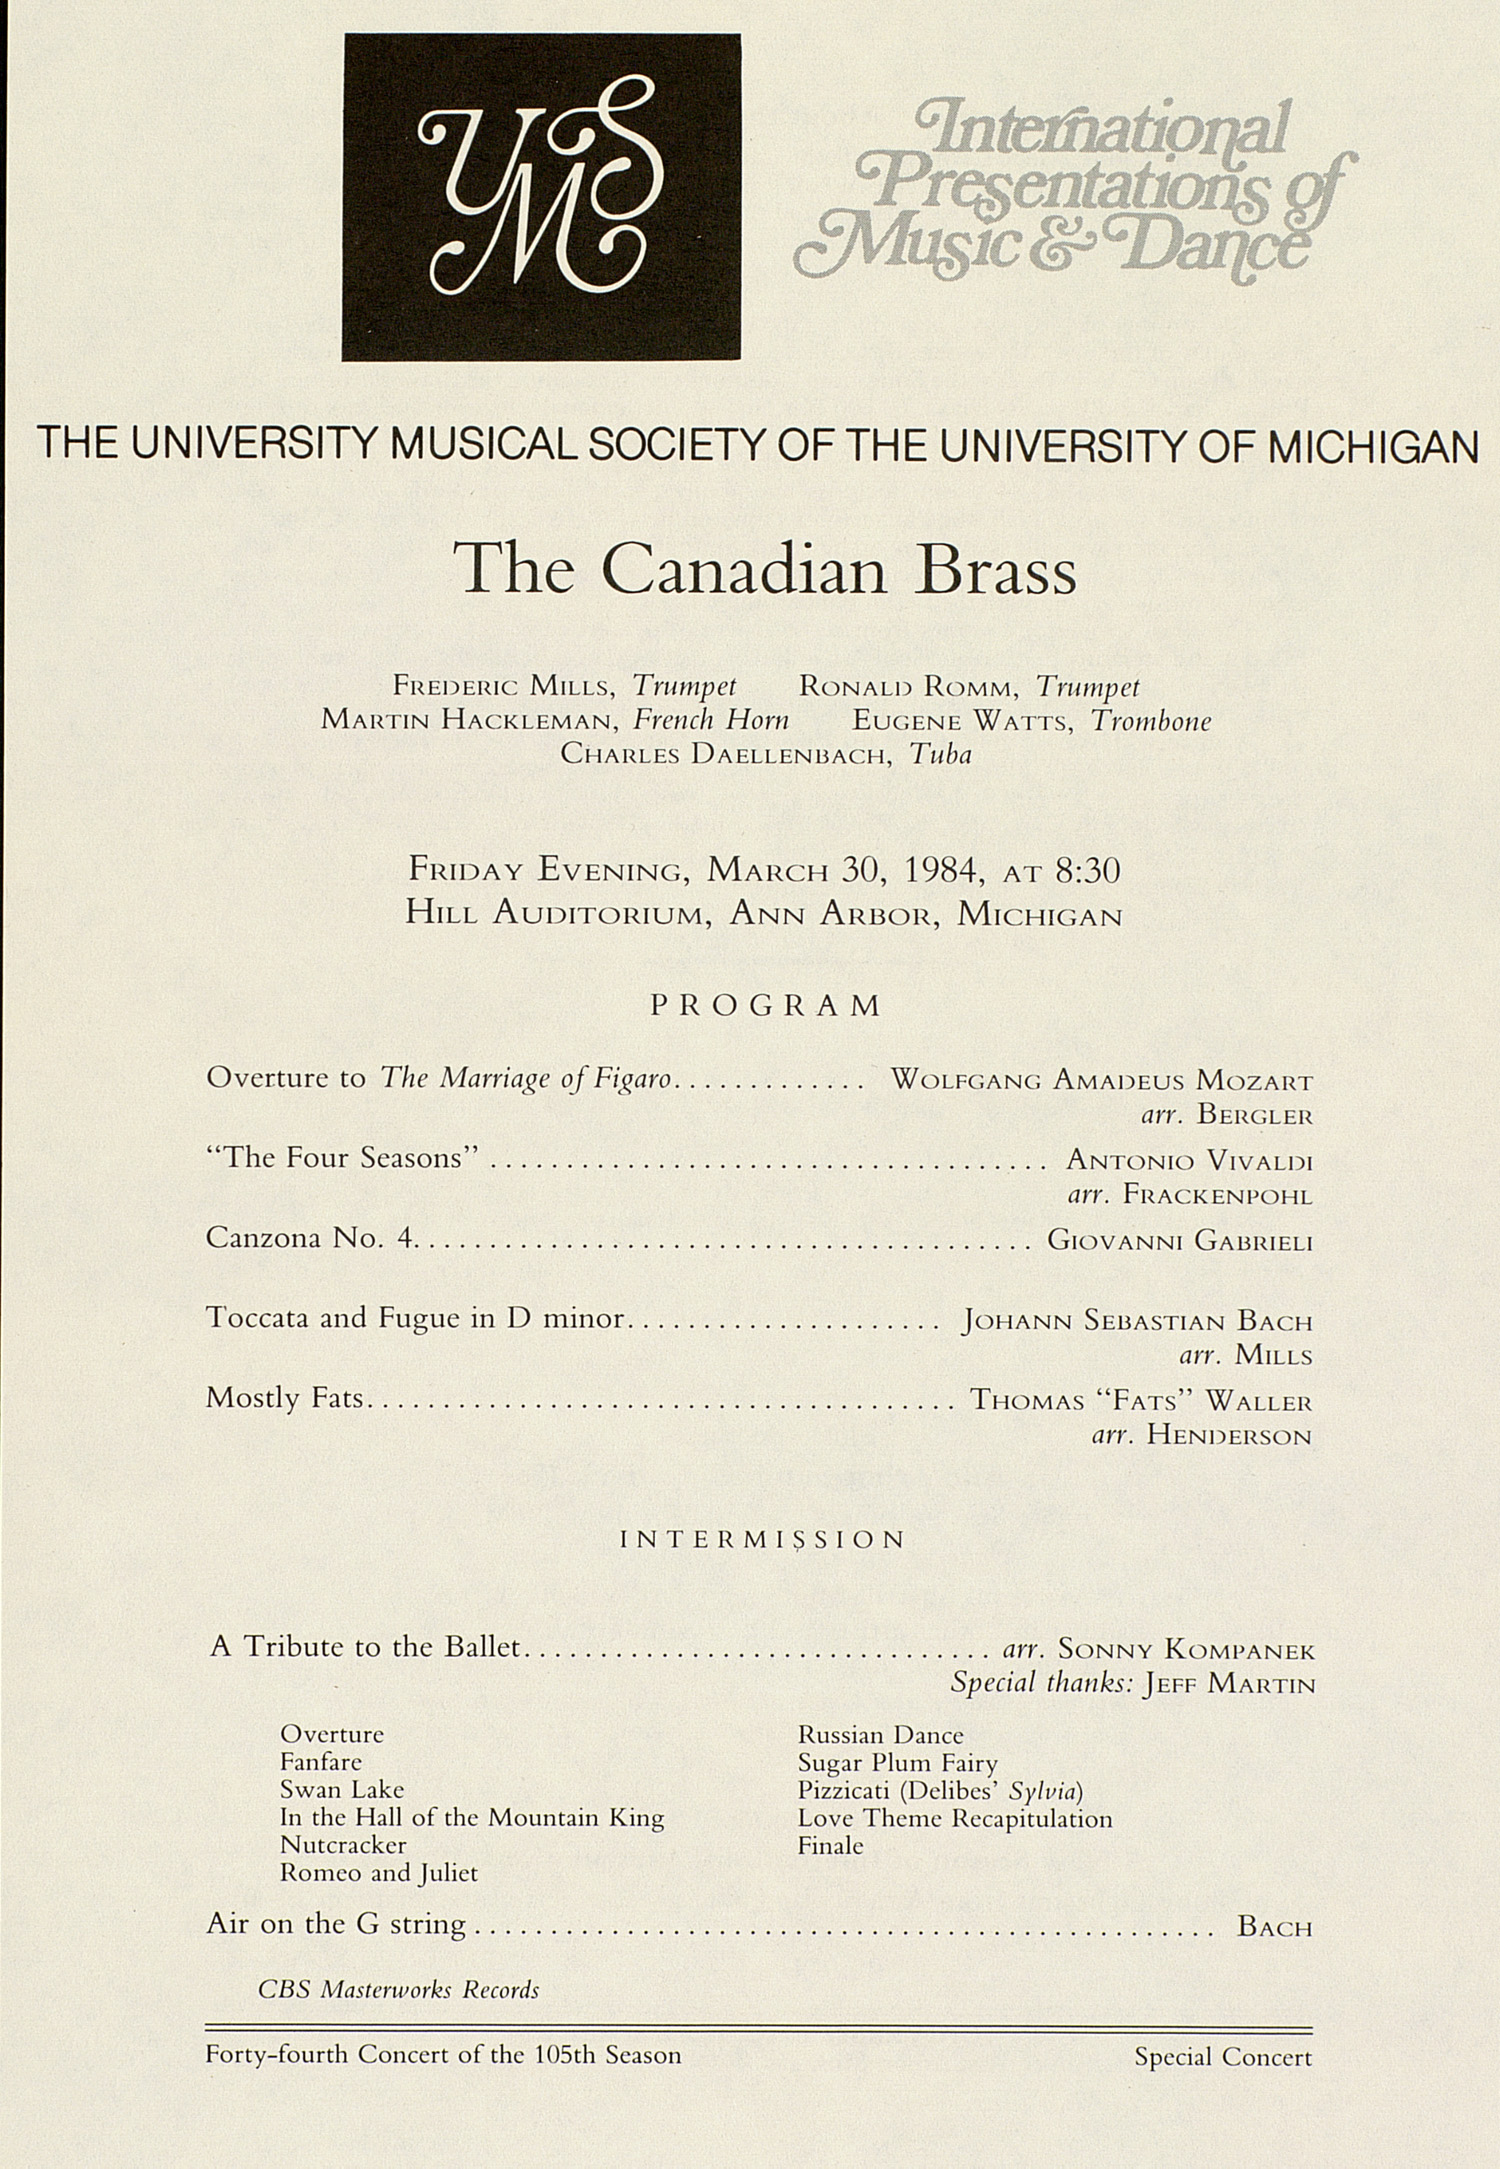 UMS Concert Program, March 30, 1984: The Canadian Brass --  image